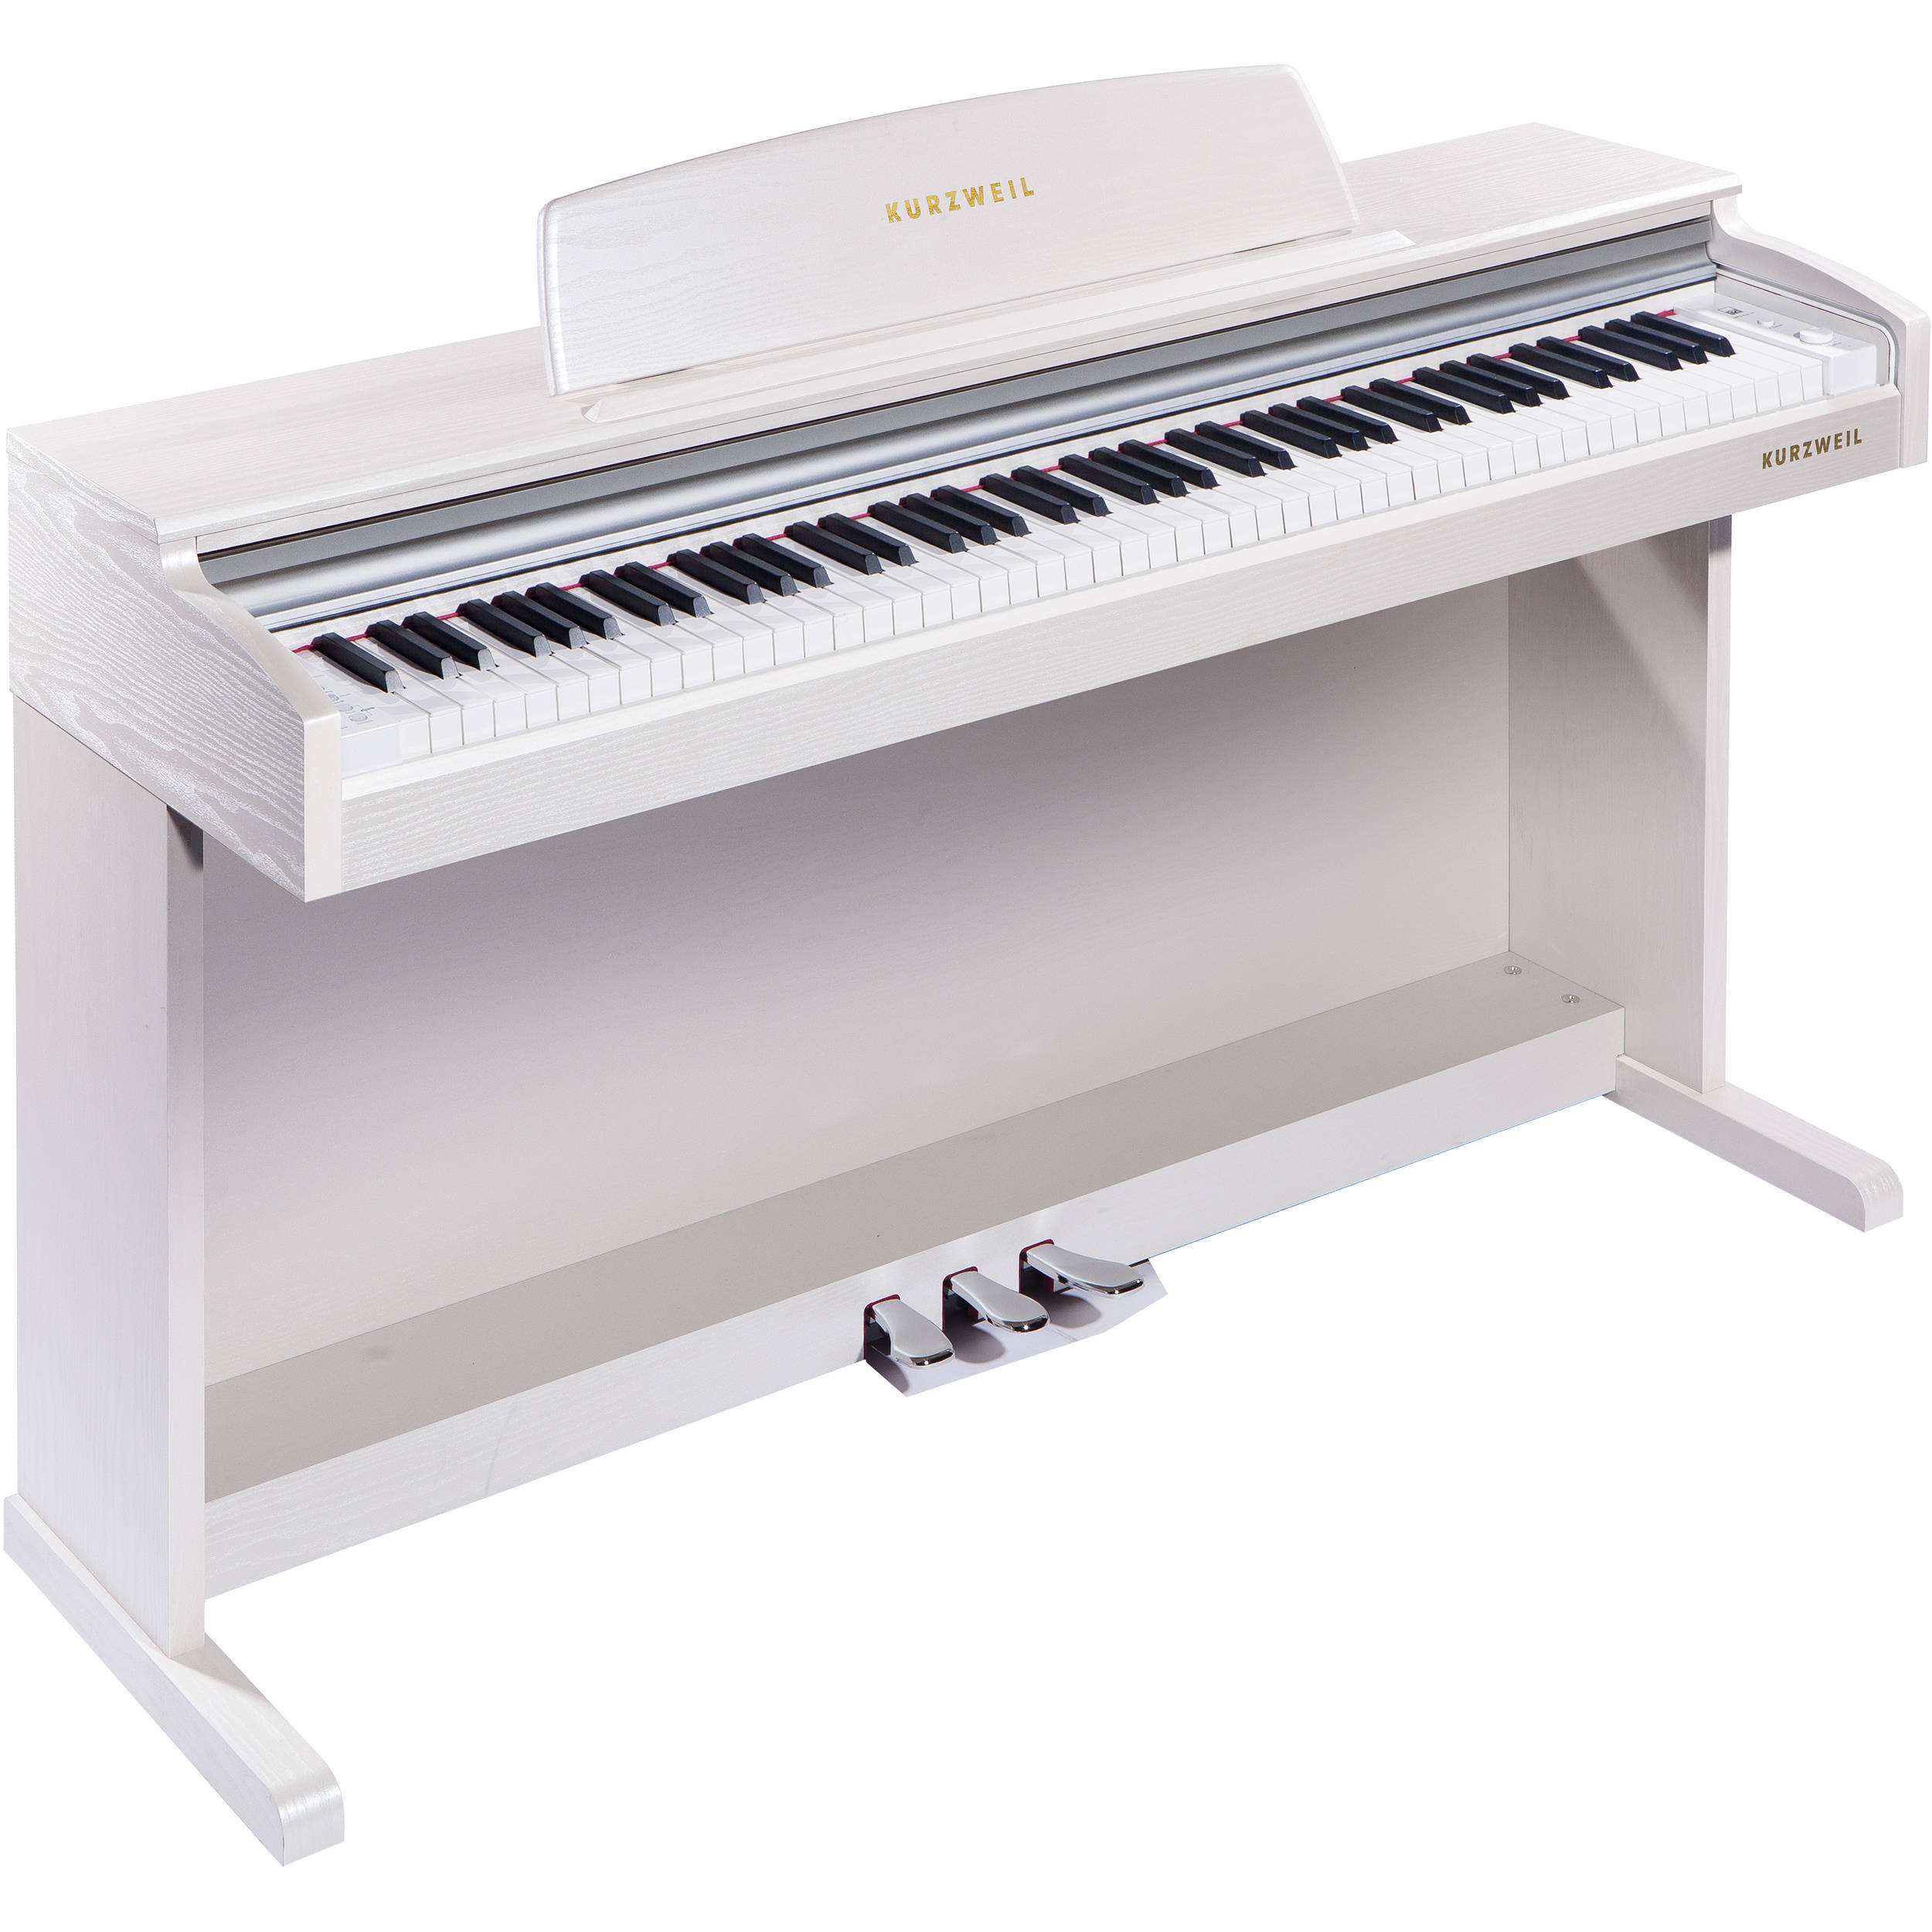 kurzweil m210 wh digital piano white m210 wh b h photo video. Black Bedroom Furniture Sets. Home Design Ideas